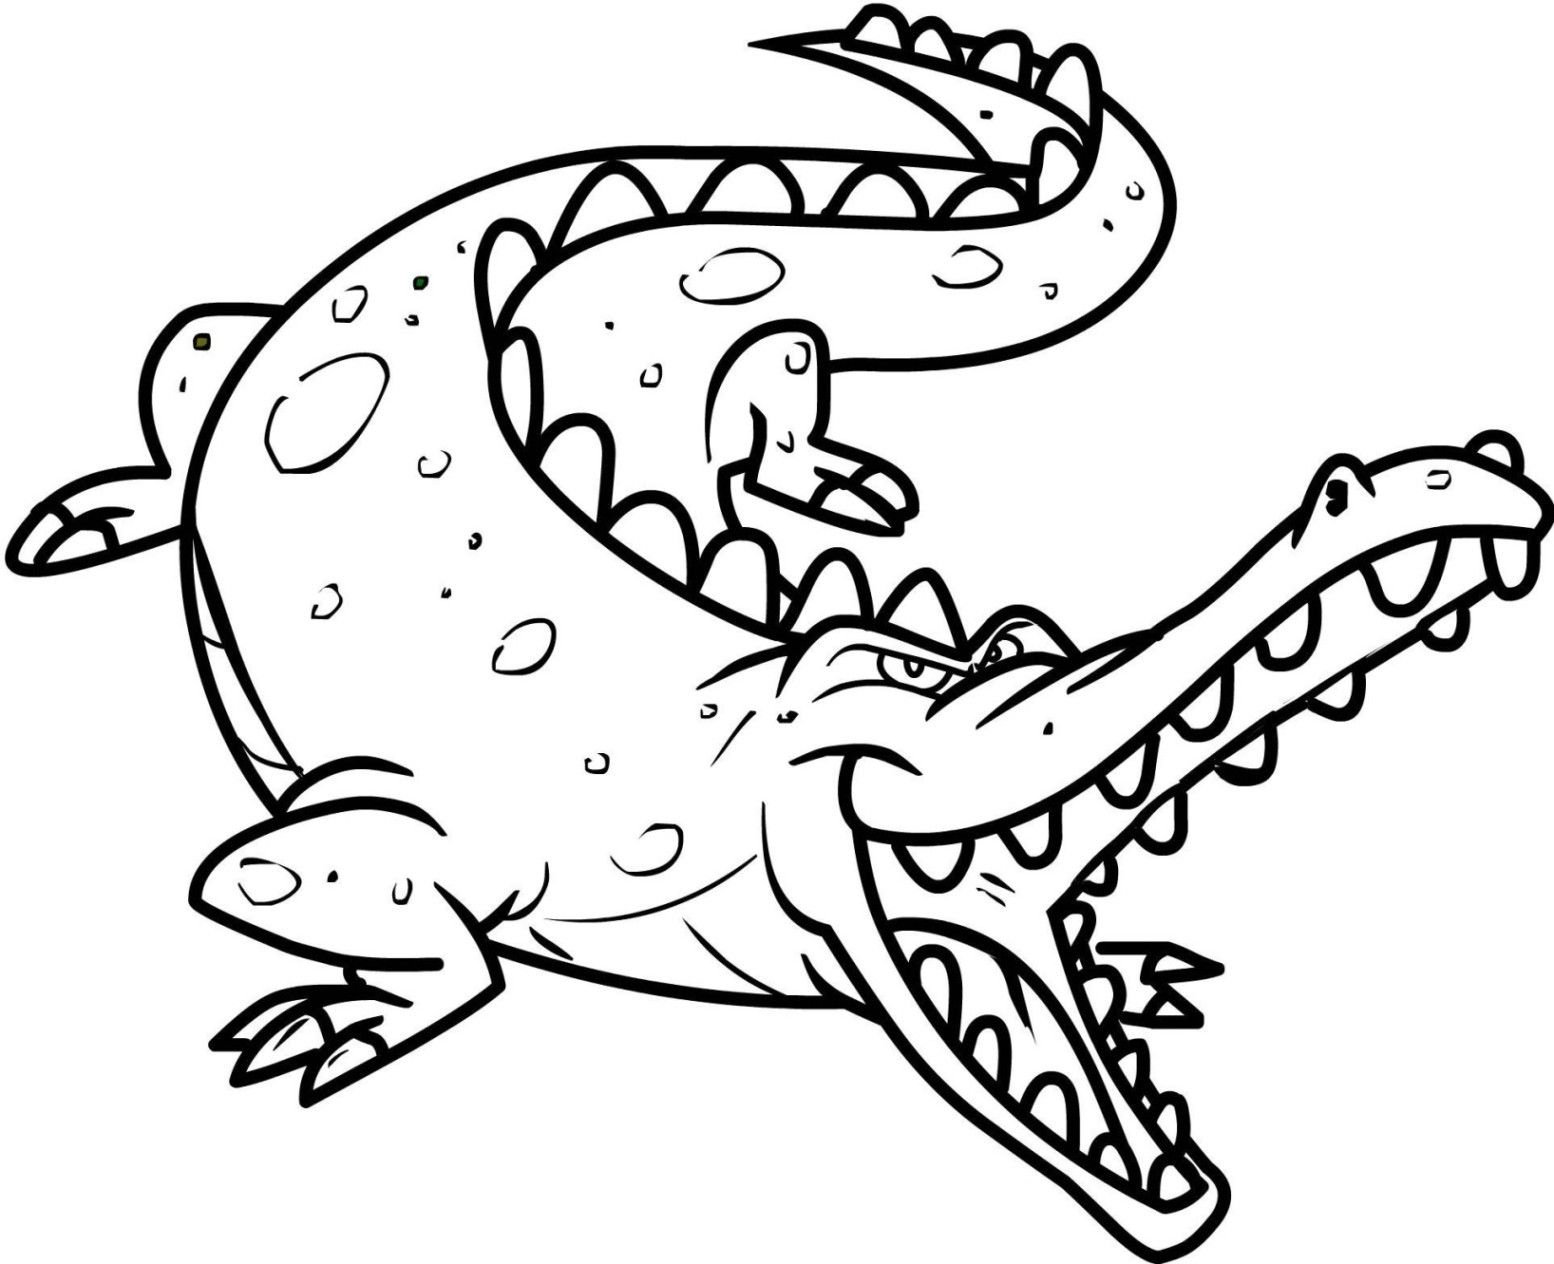 bild-malvorlage-krokodil-13.jpg (1554×1264) | Coloring pages ~ kids ...